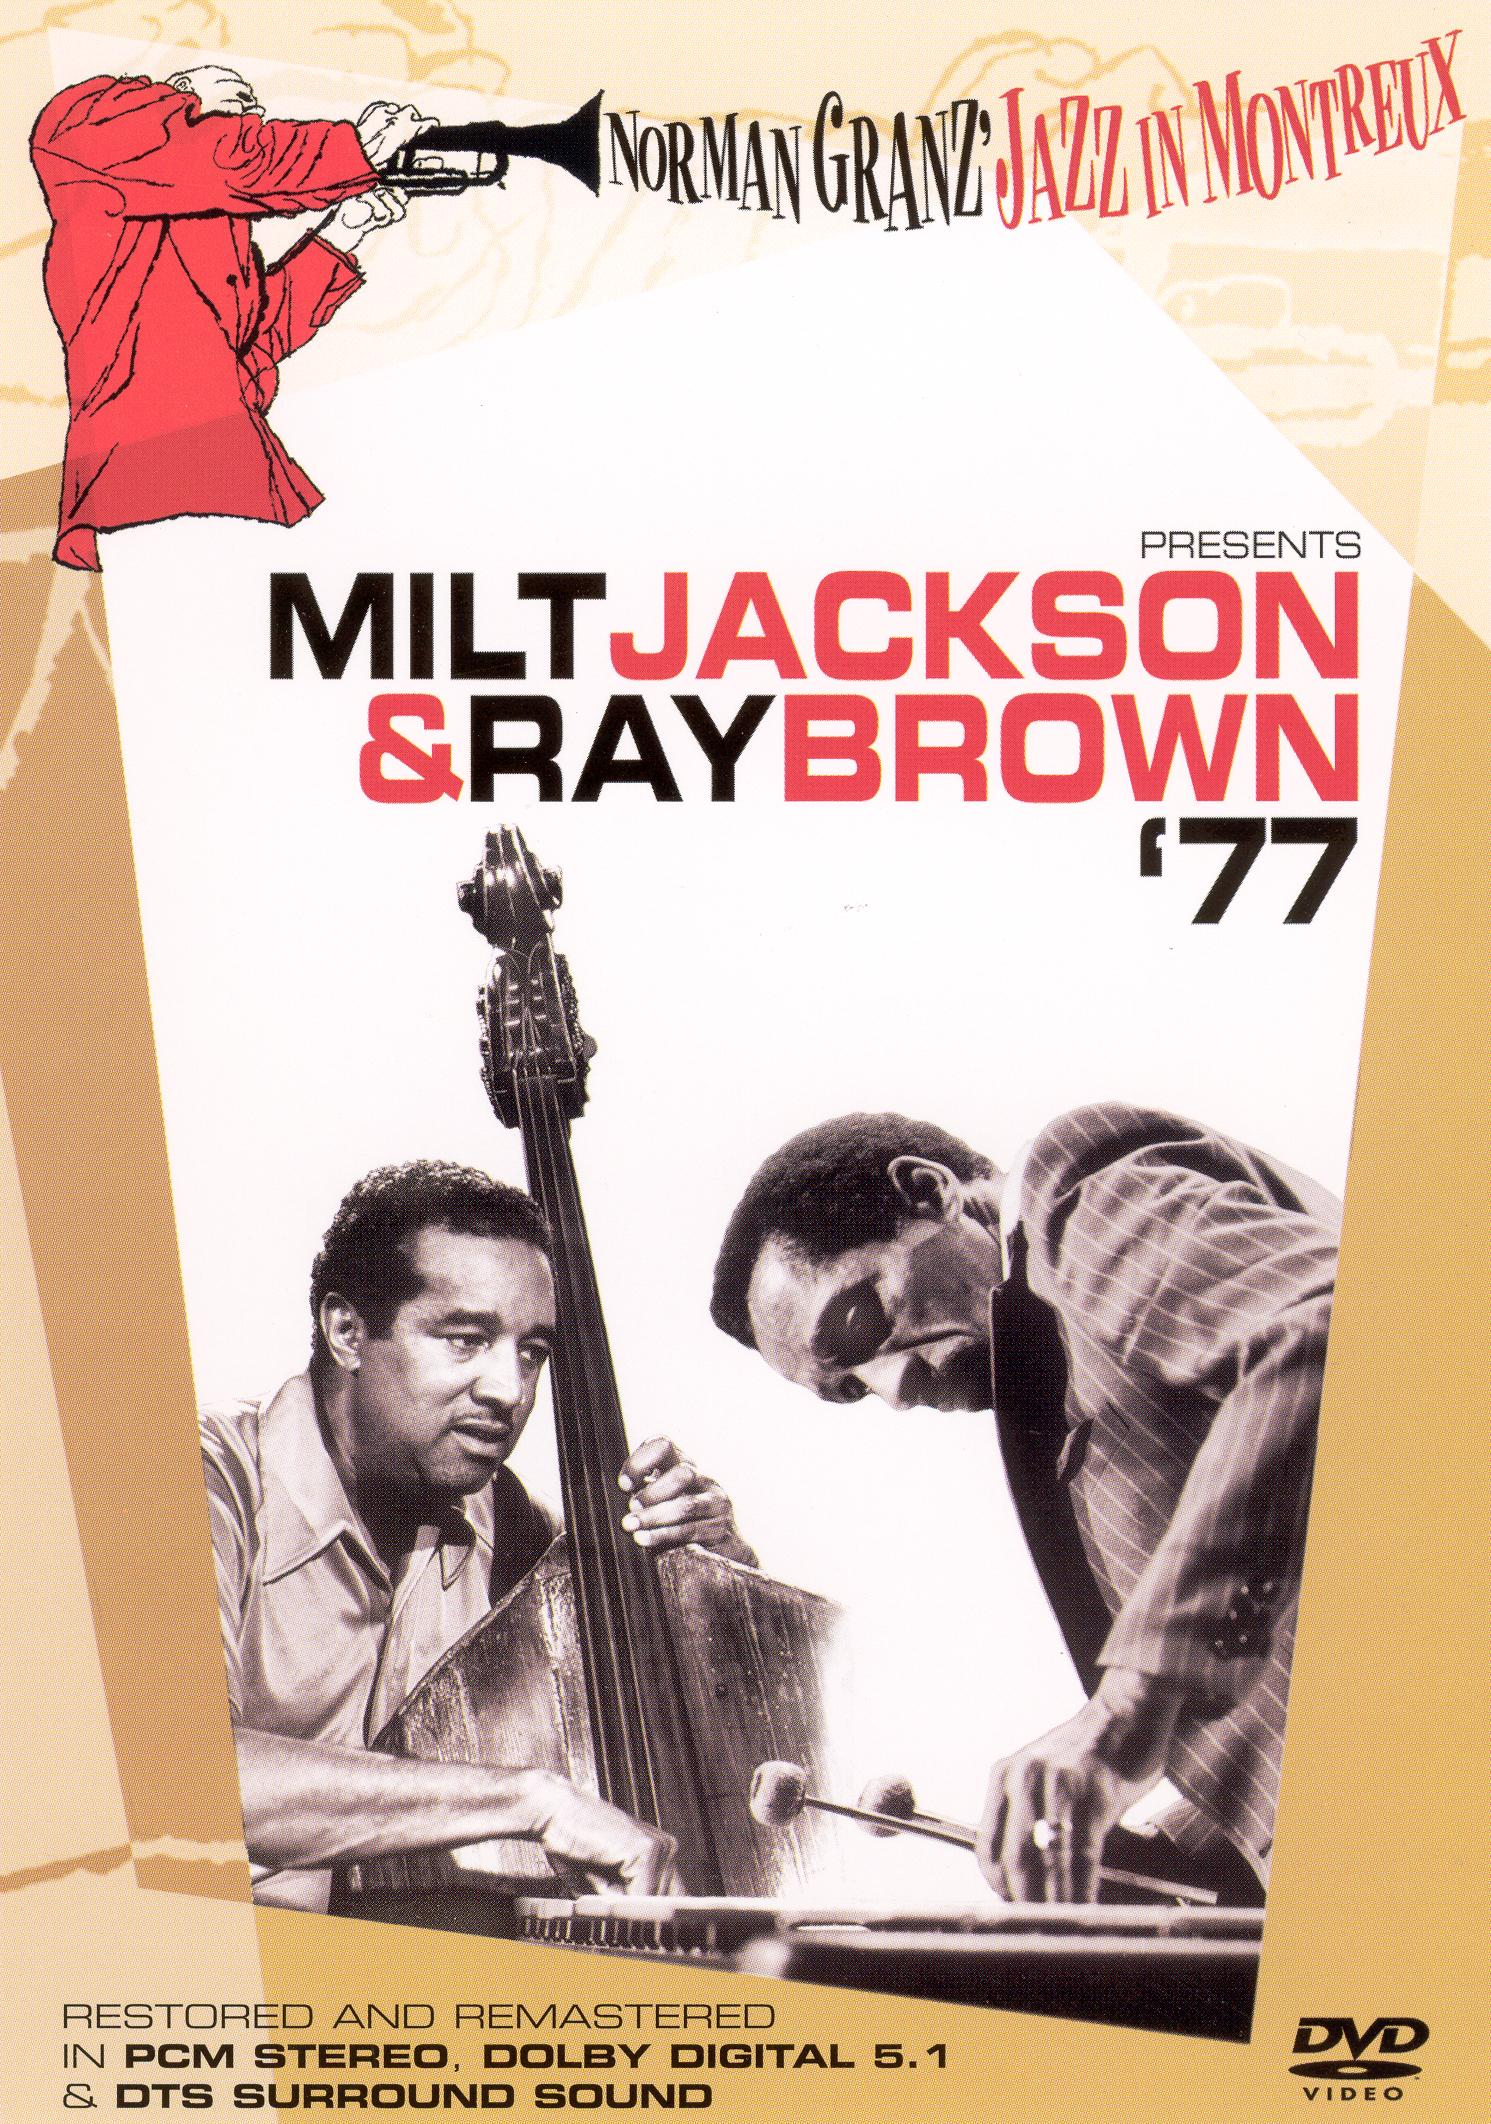 Norman Granz' Jazz In Montreux: Milt Jackson and Ray Brown '77